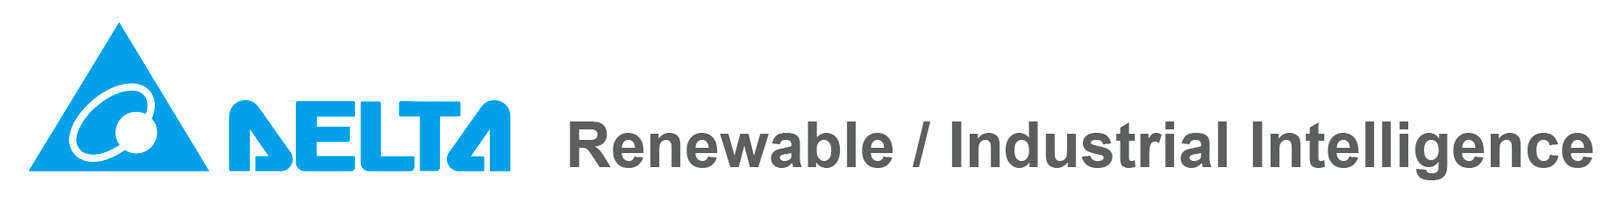 Renewable / Industrial Intelligence